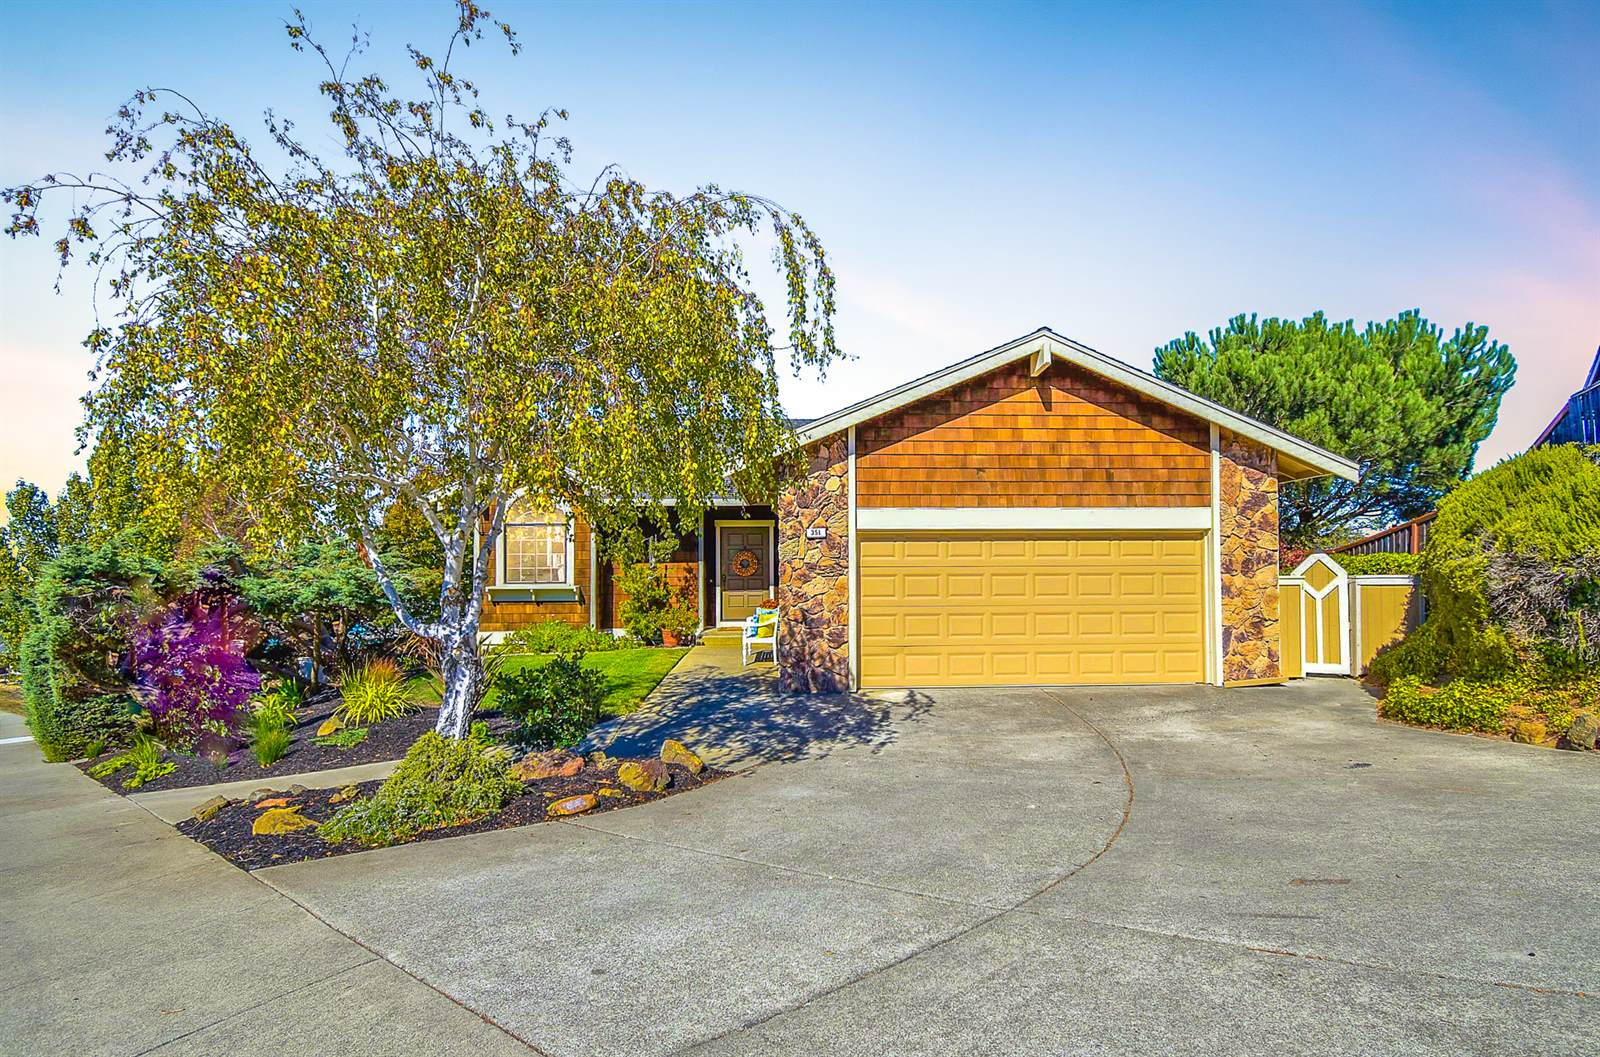 California Waterfront Property In Sacramento Fairfield